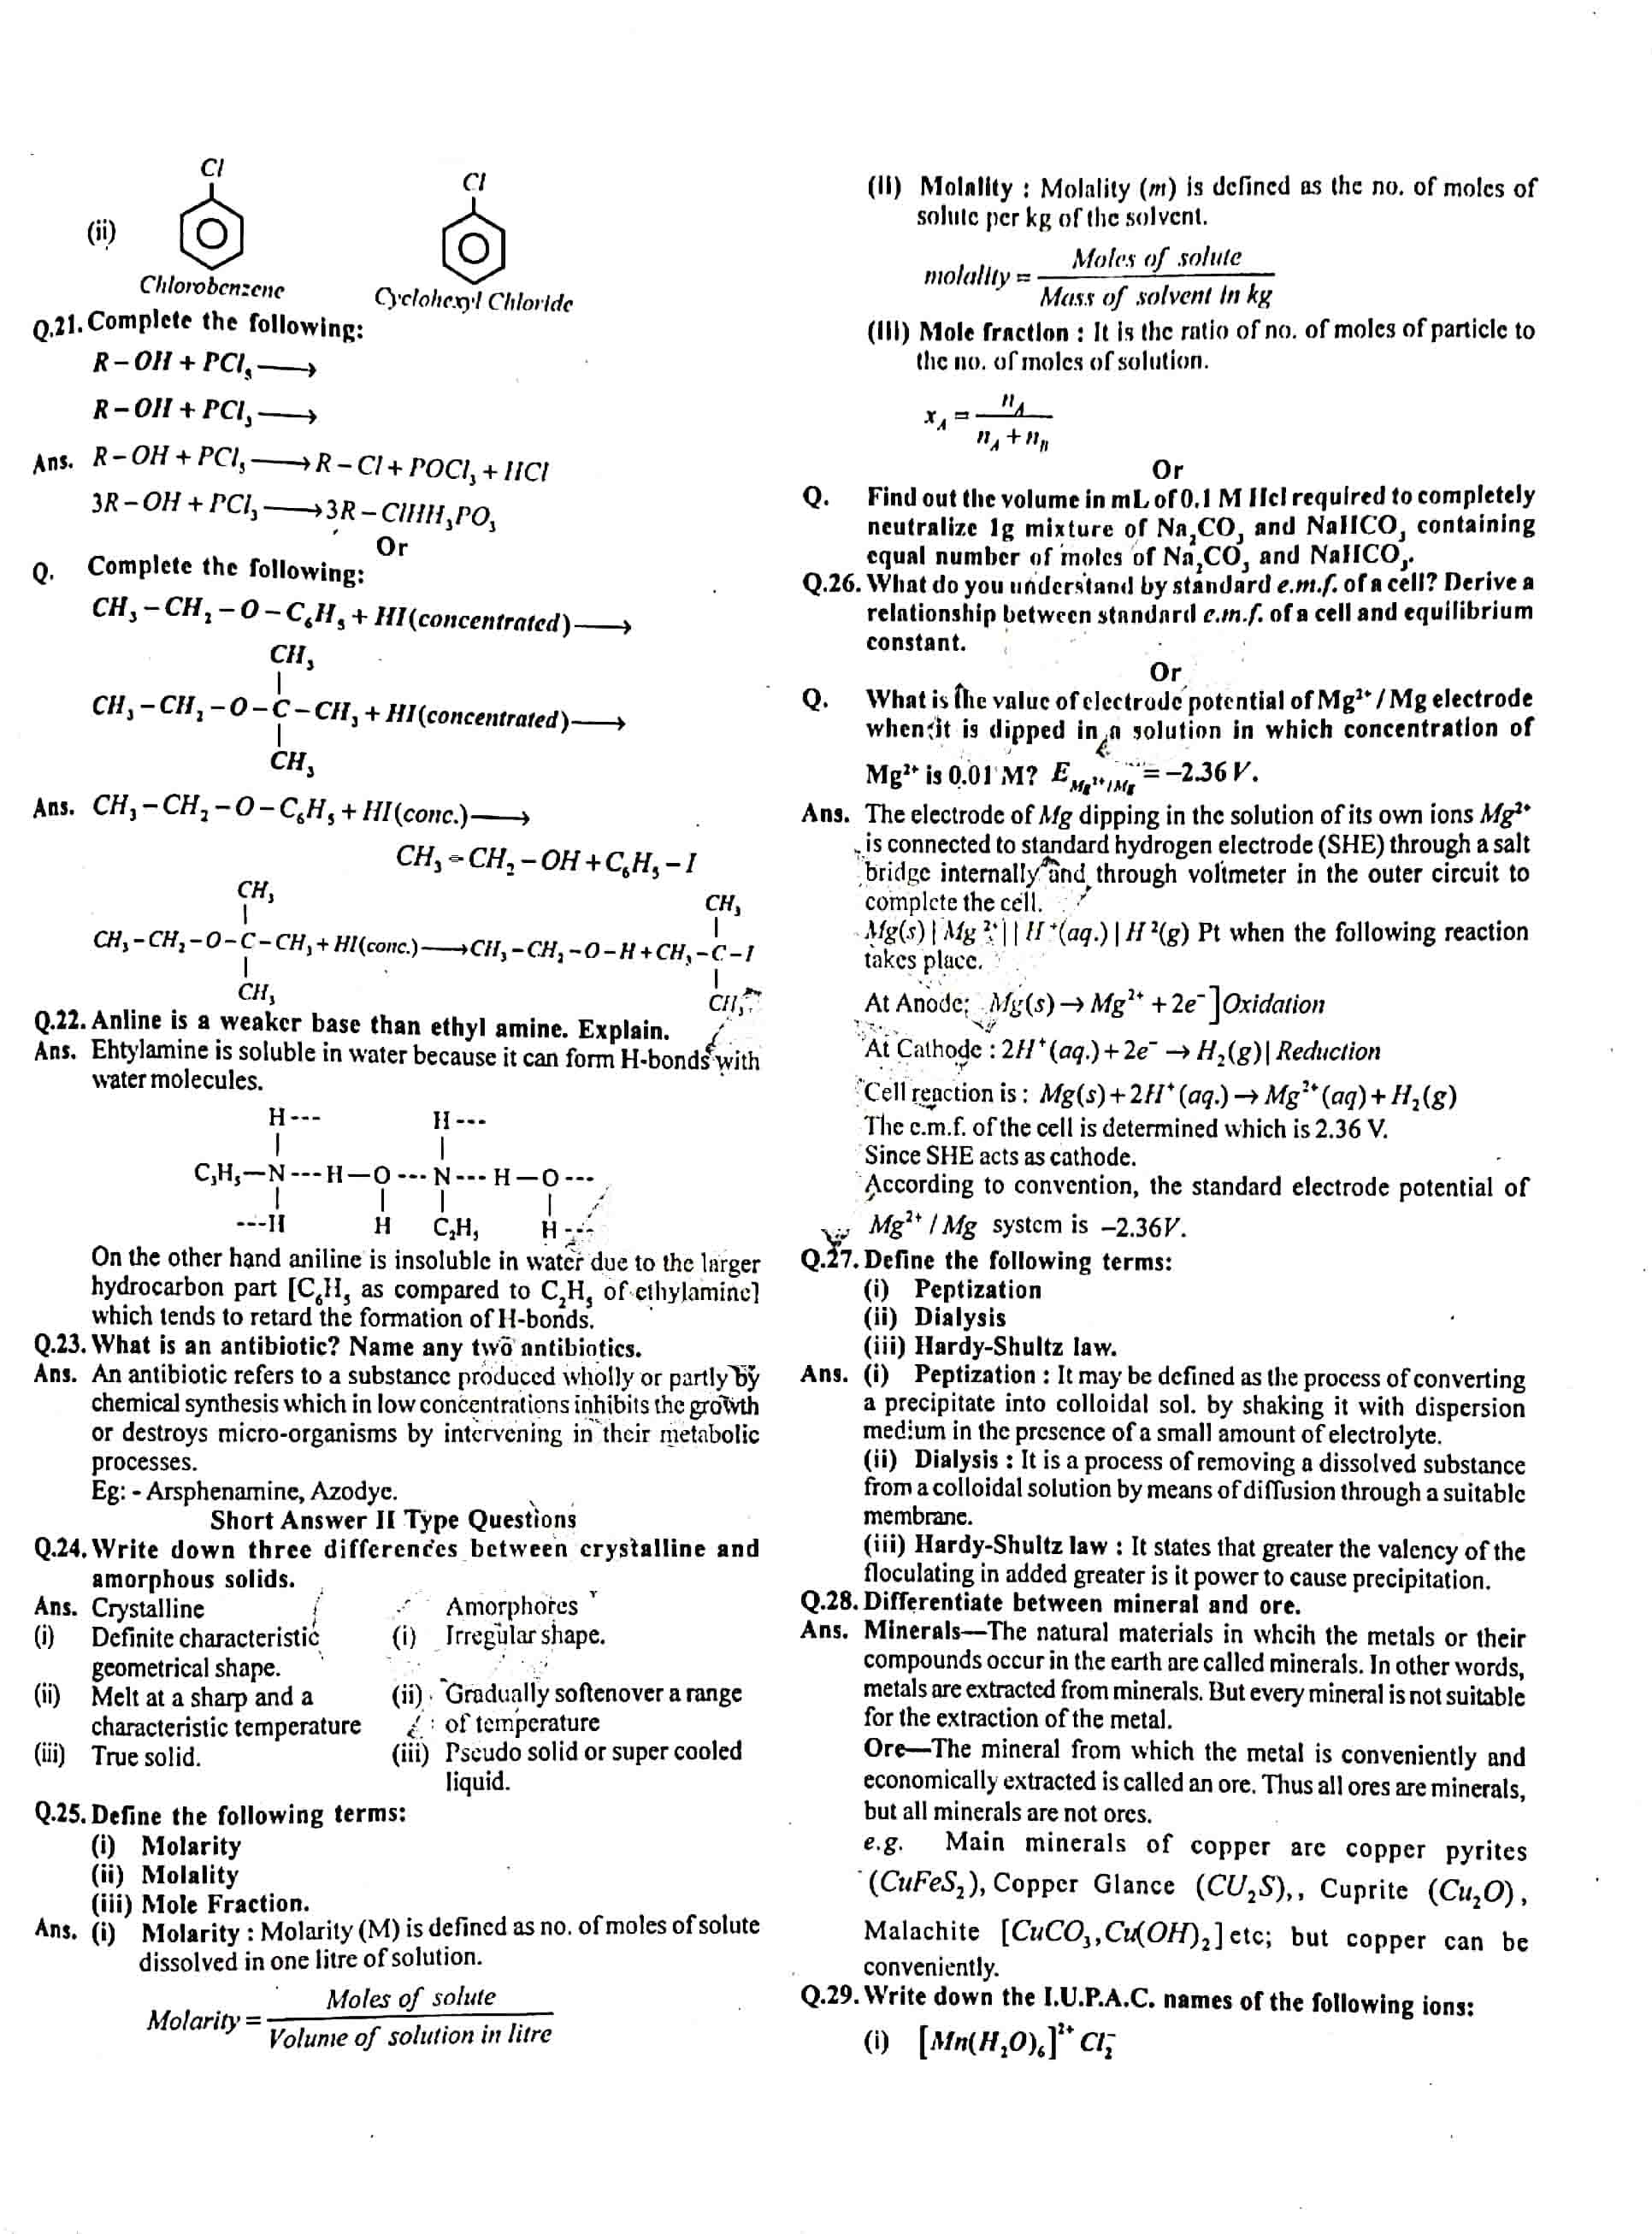 JAC Class 12 chemistry 2015 Question Paper 02